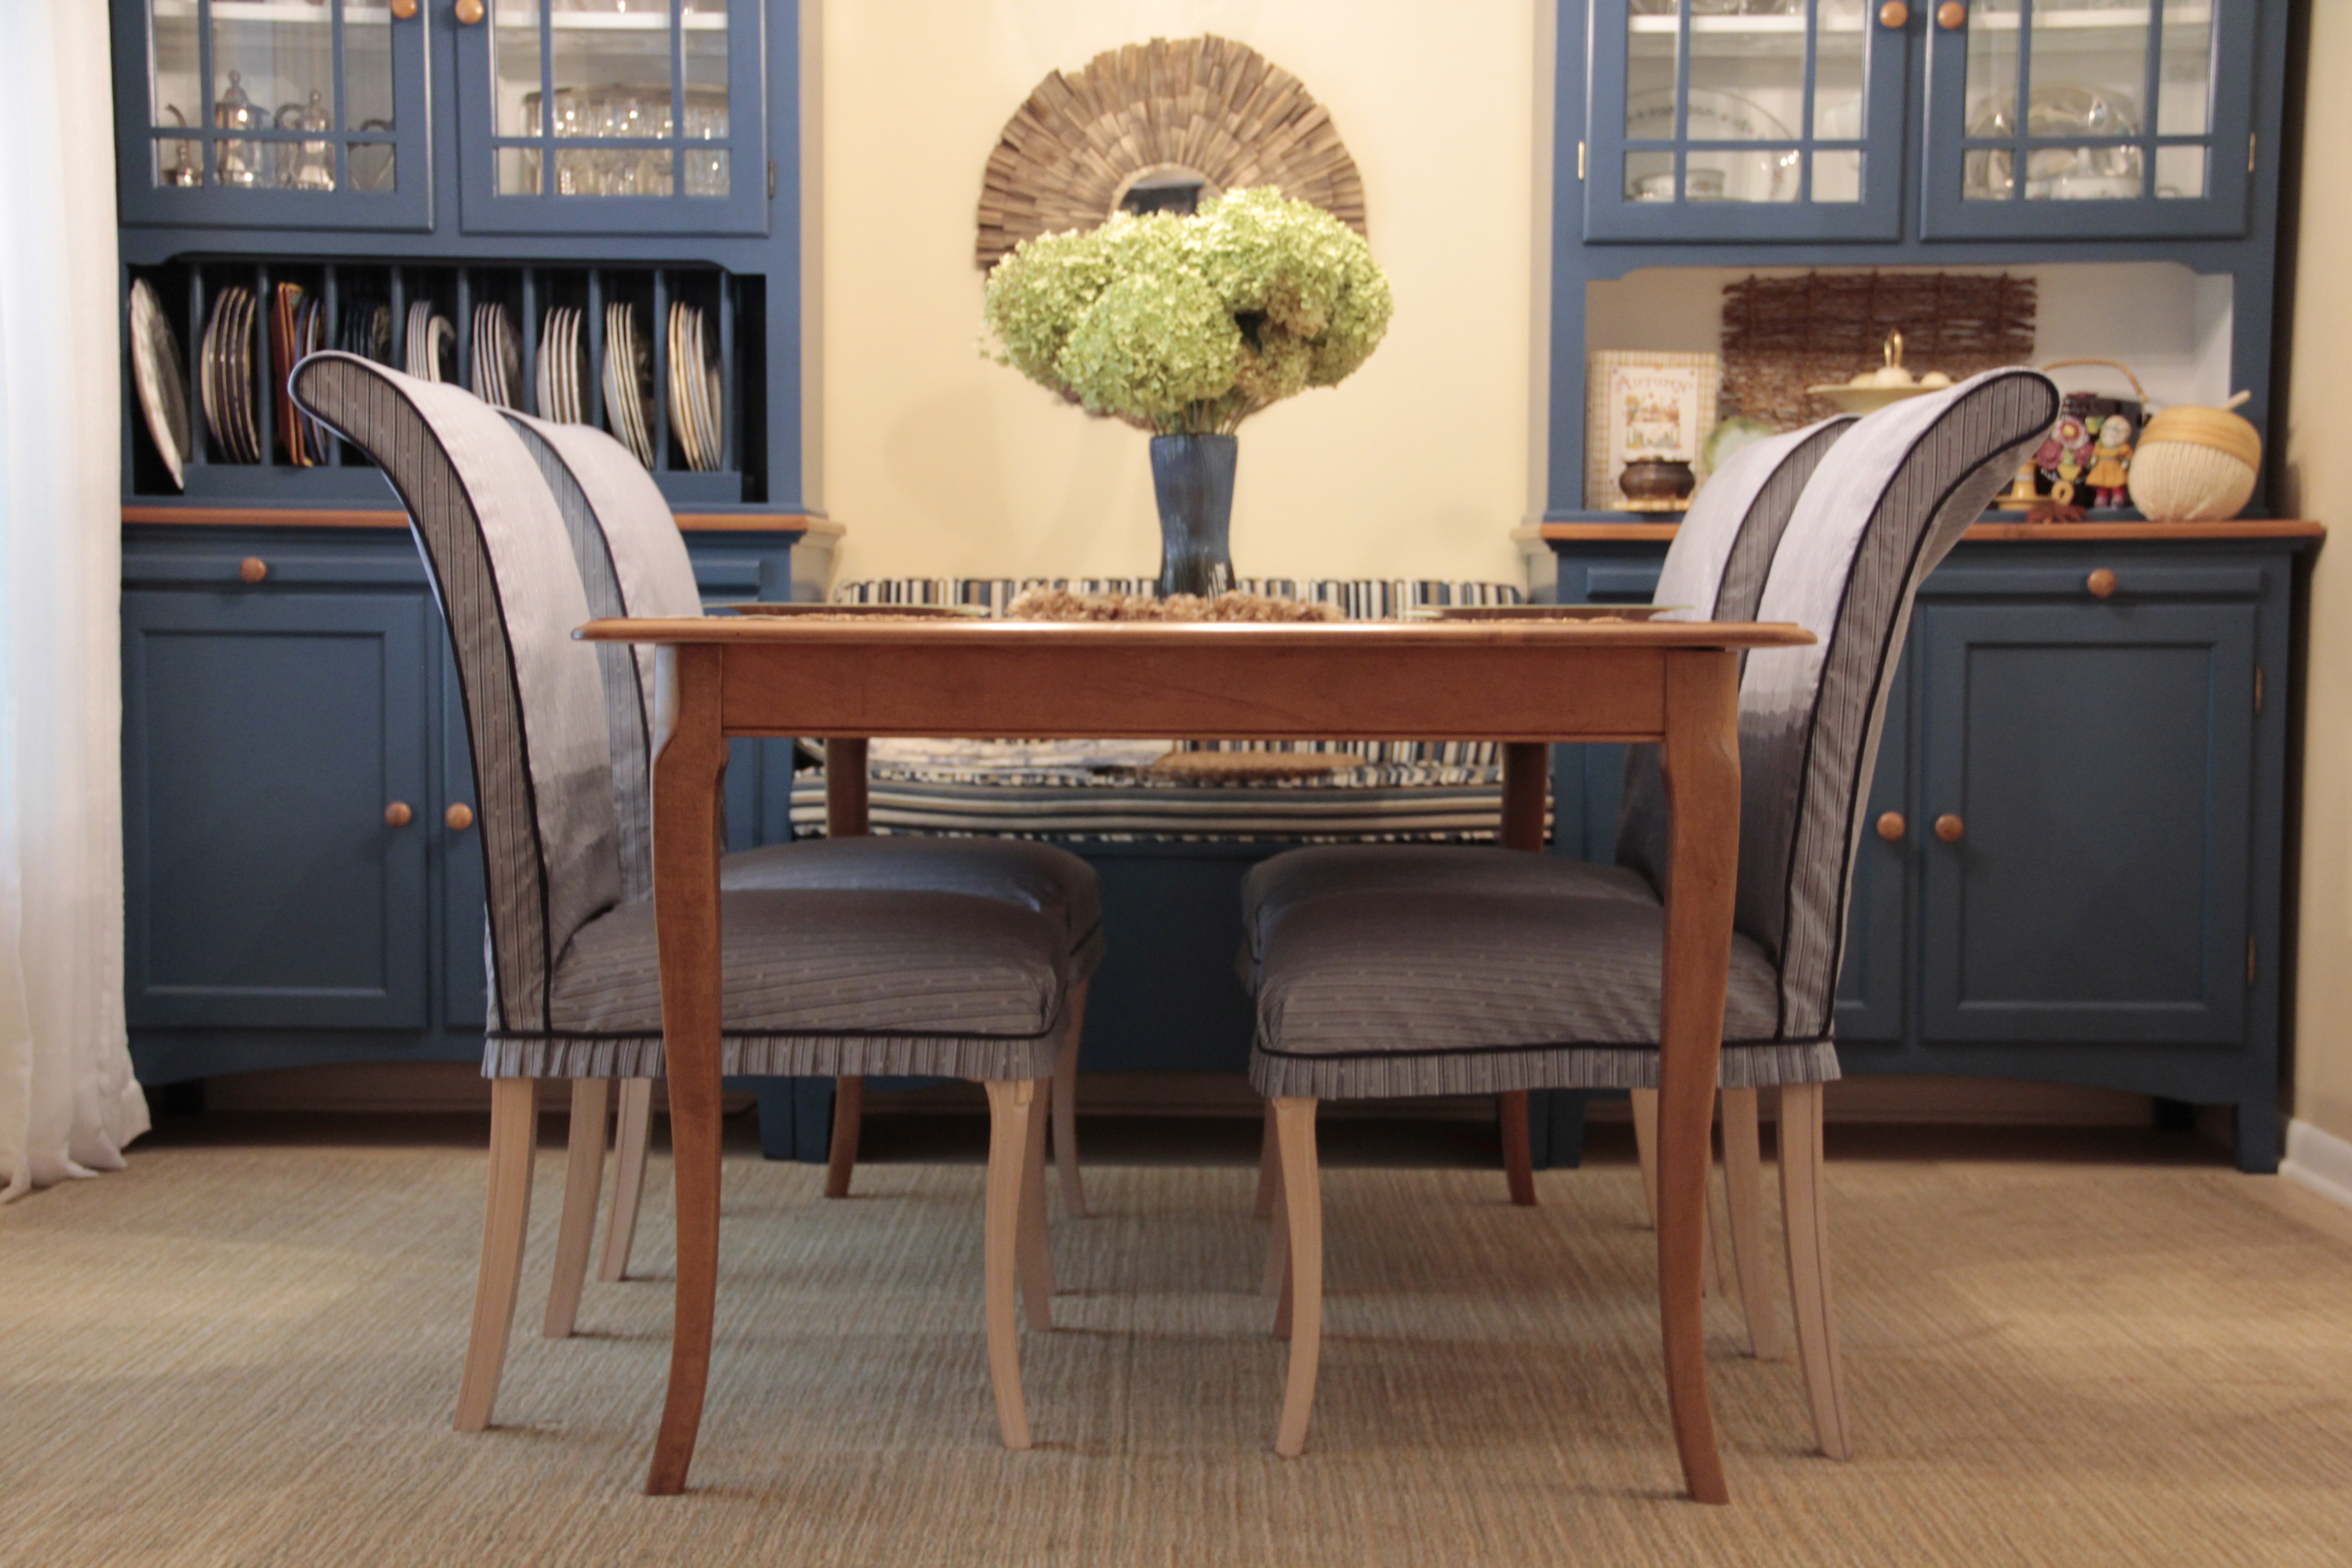 Dining Chair Slipcovers - a